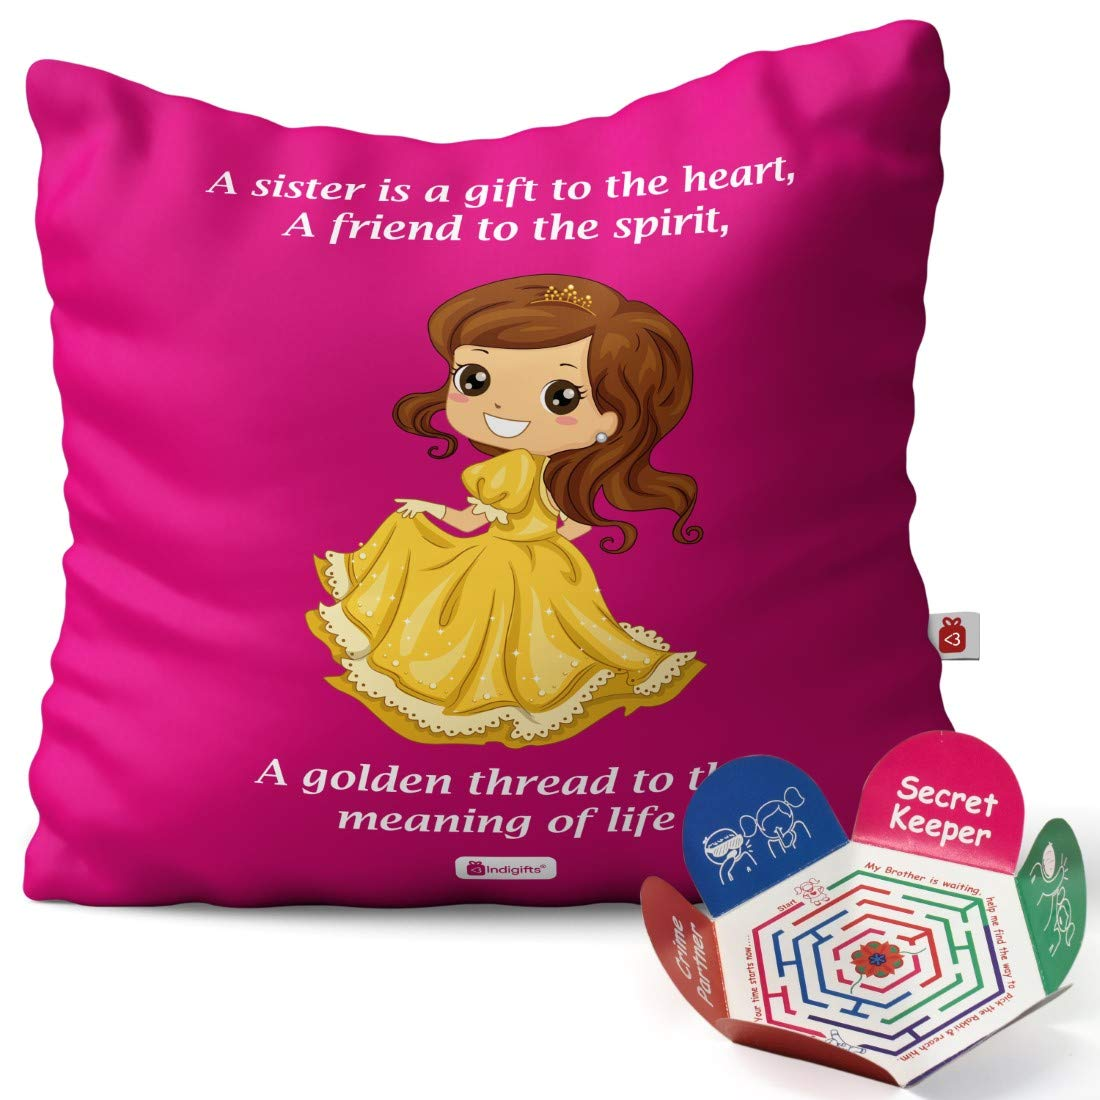 Indigifts Rakhi Gift for Sister My Golden Thread of Life Quote Magenta  Cushion Cover 20x20 inches with Filler   Raksha Bandhan Gifts for Sister,  ...